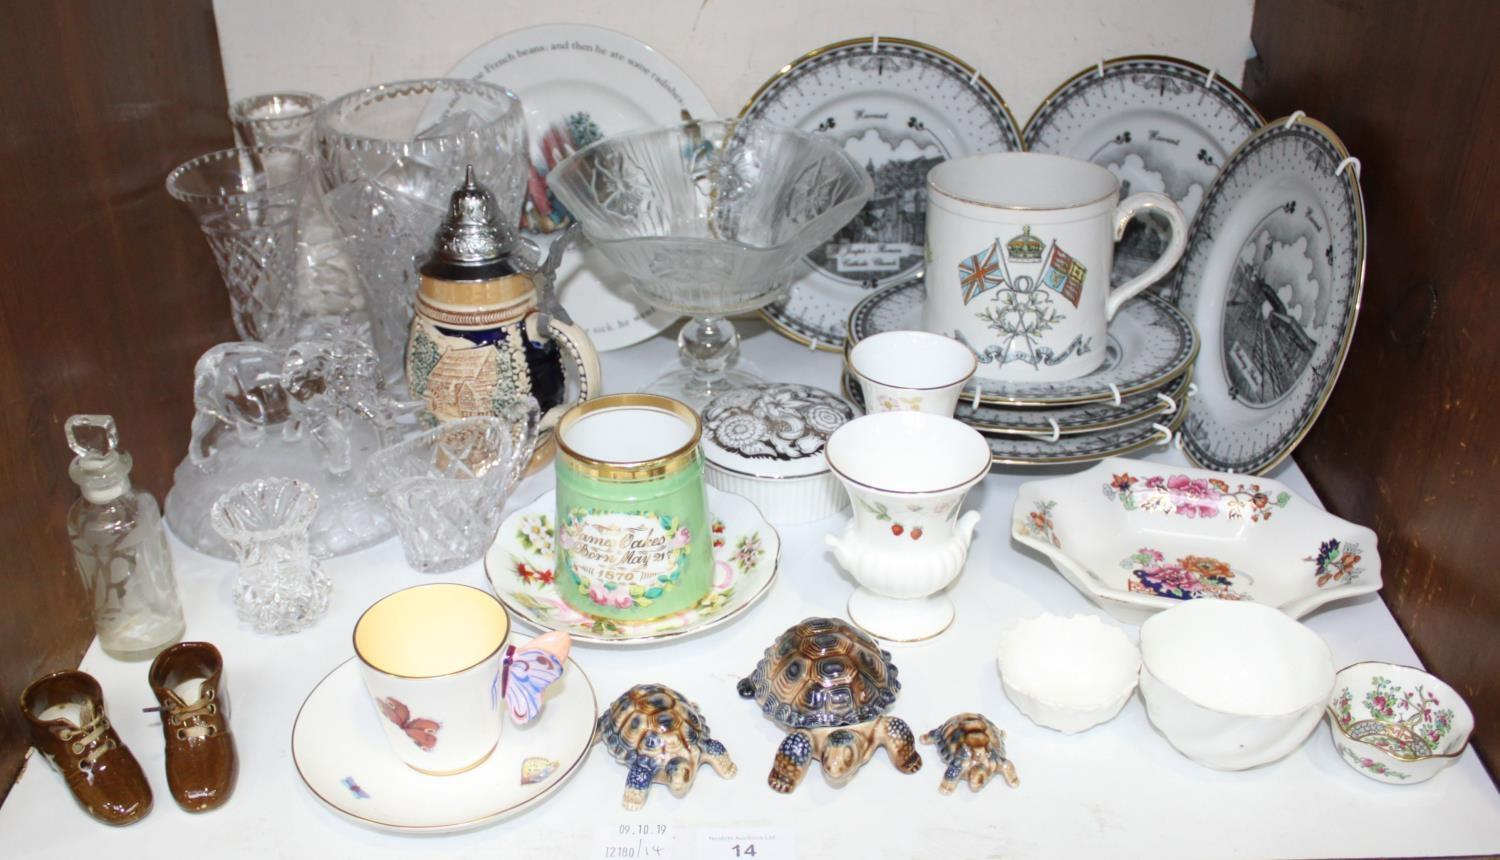 Lot 14 - SECTION 14. A quantity of glass and ceramics including a Stuart vase, Royal Doulton vase, elephant